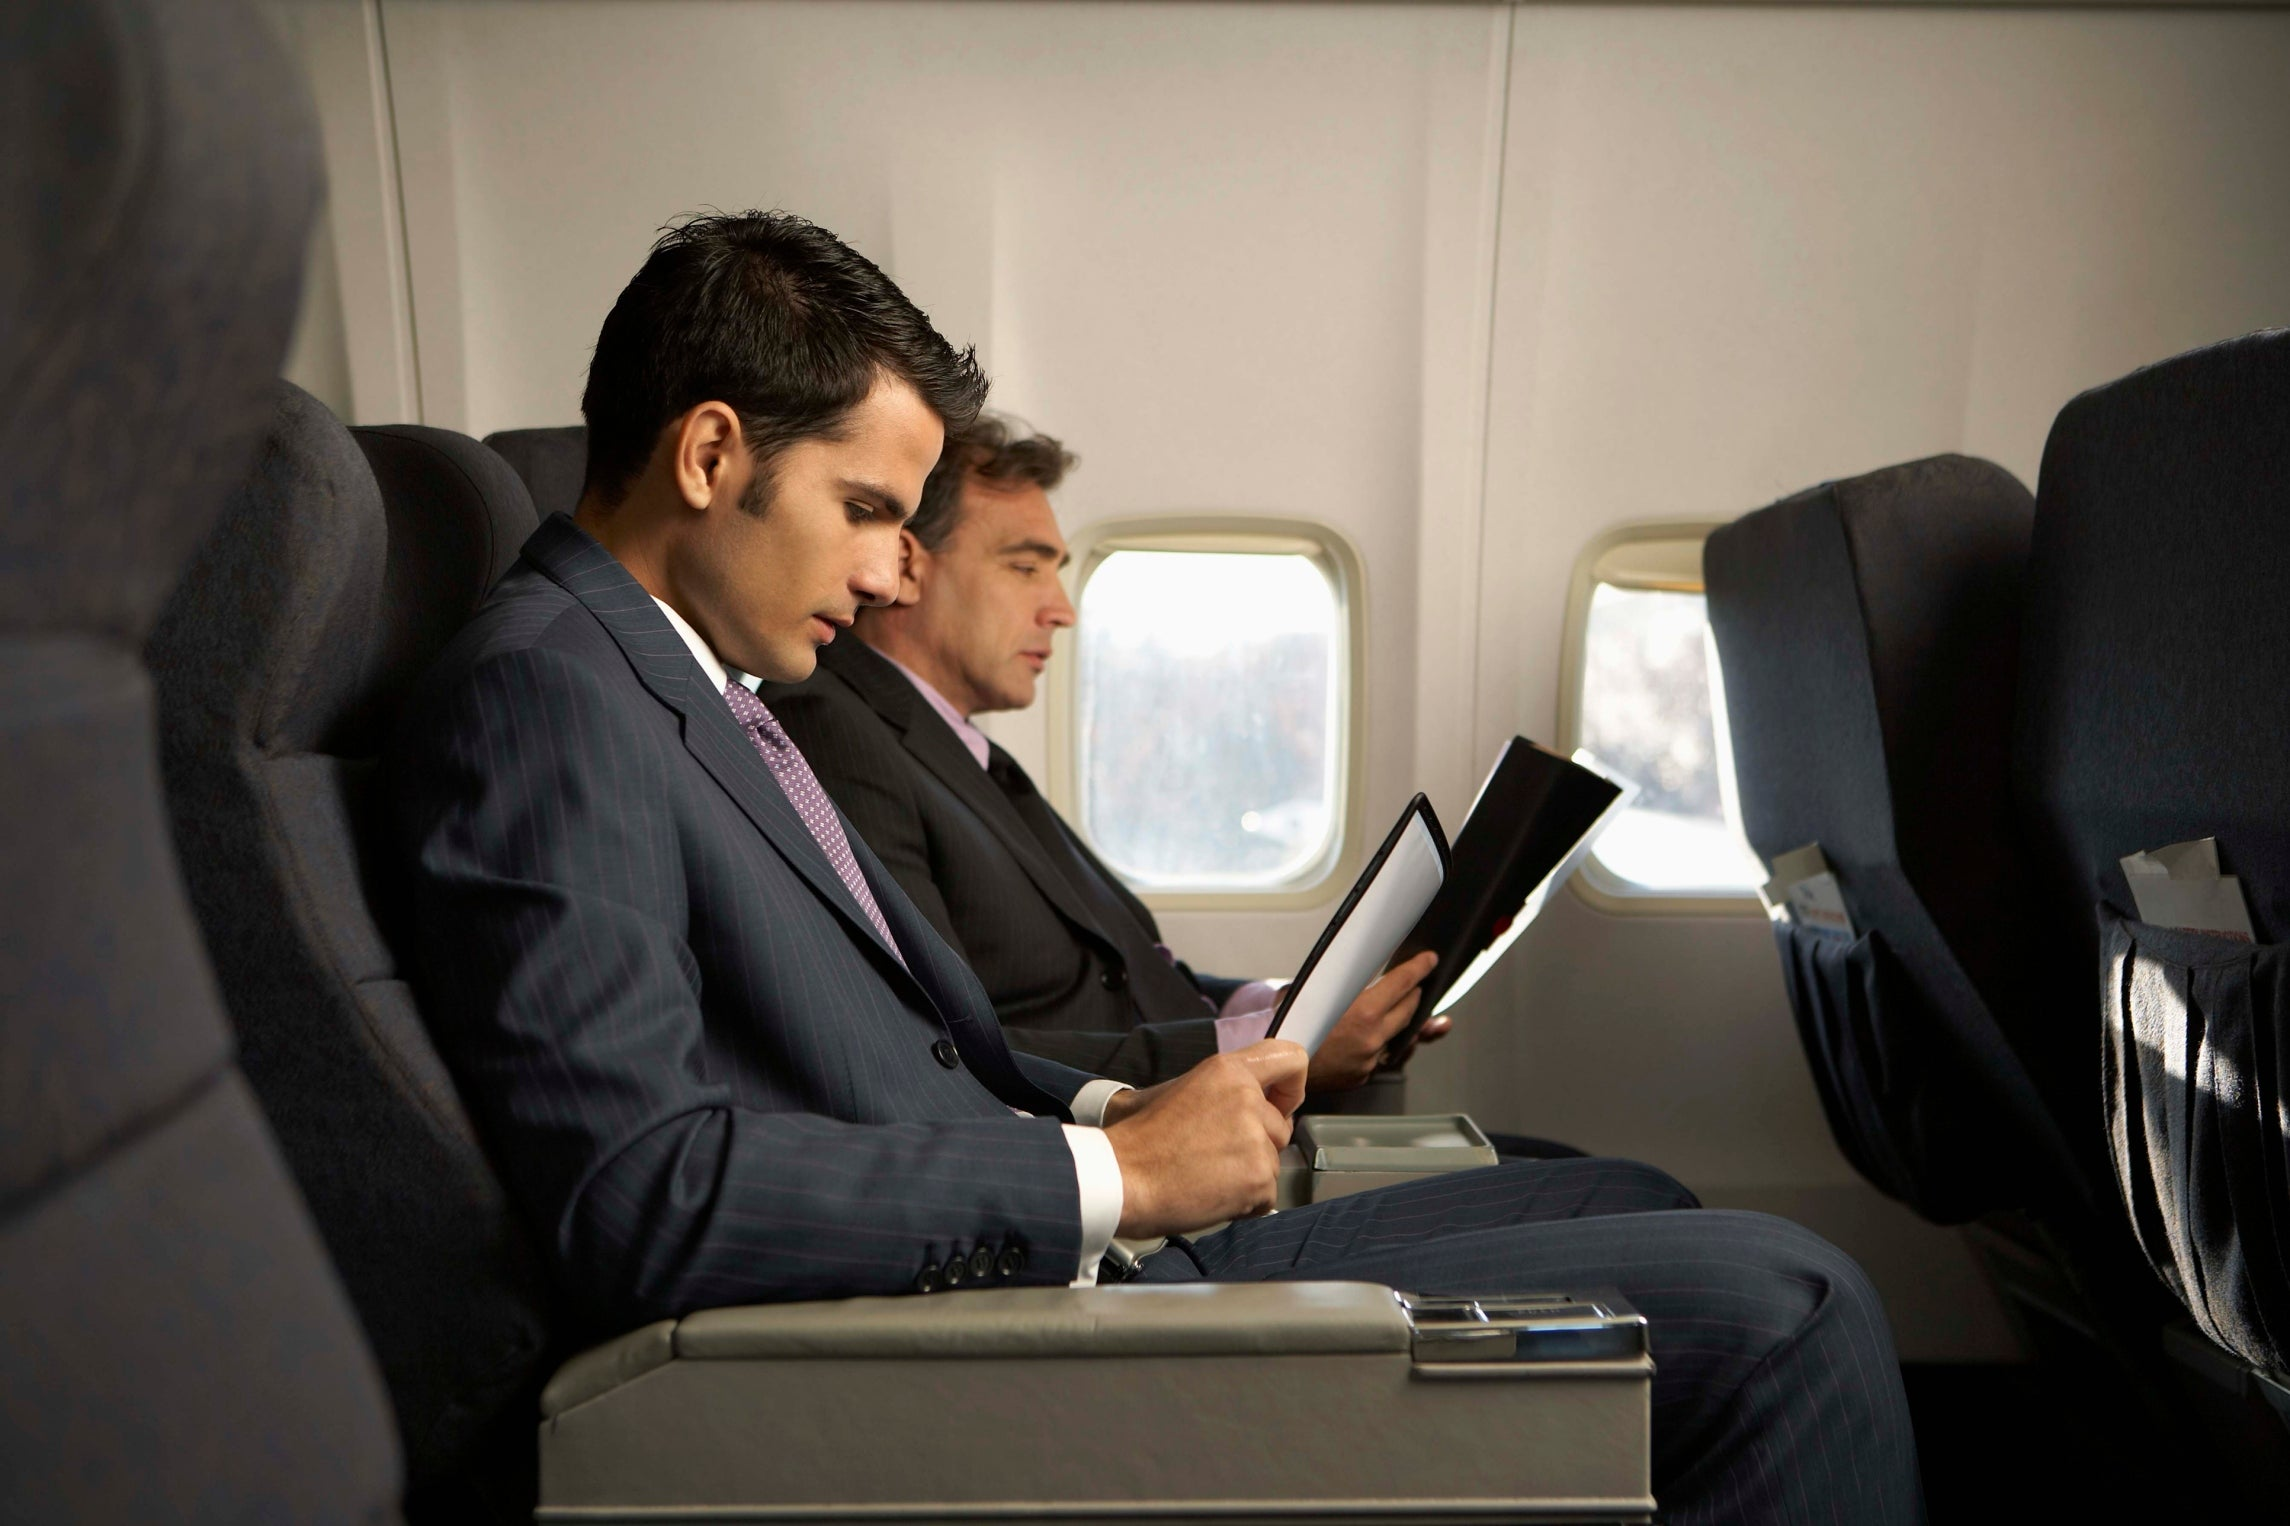 Tips for Cheap Upgrades and More Legroom